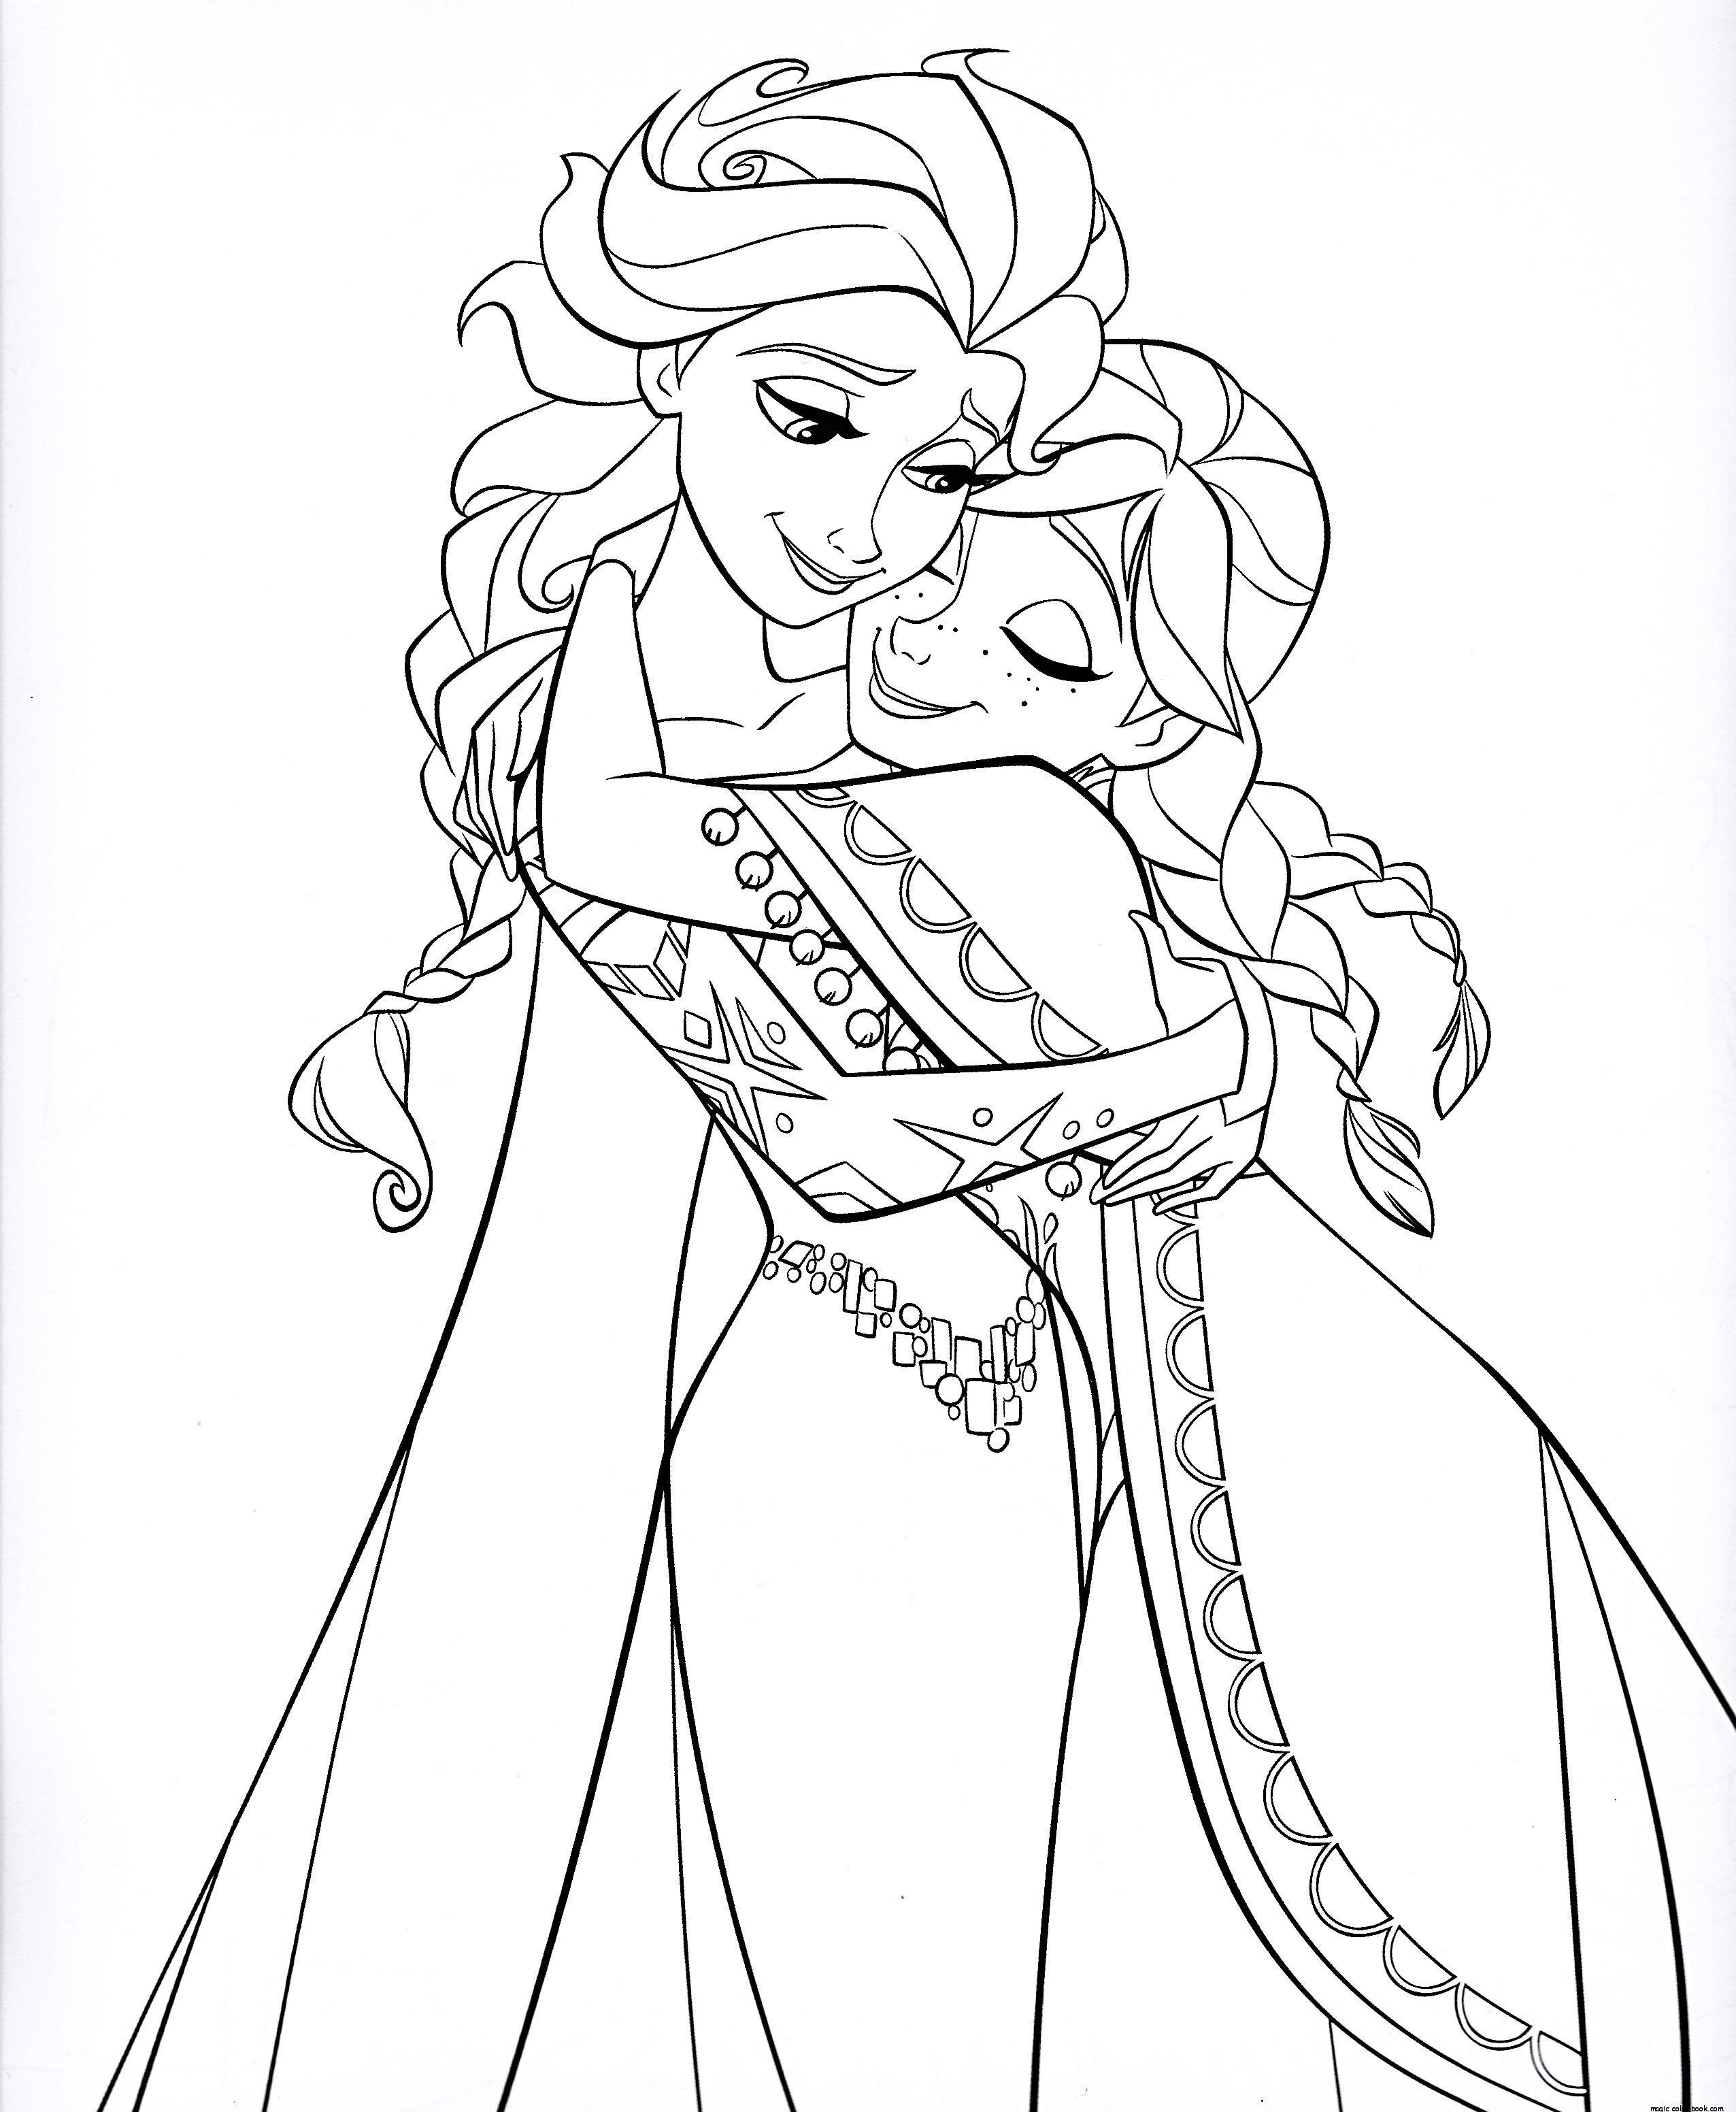 Disney Ausmalbilder Kostenlos Ausdrucken : Frozen Sisters Elsa Queen Coloring Pages Online Free Holiday Nail